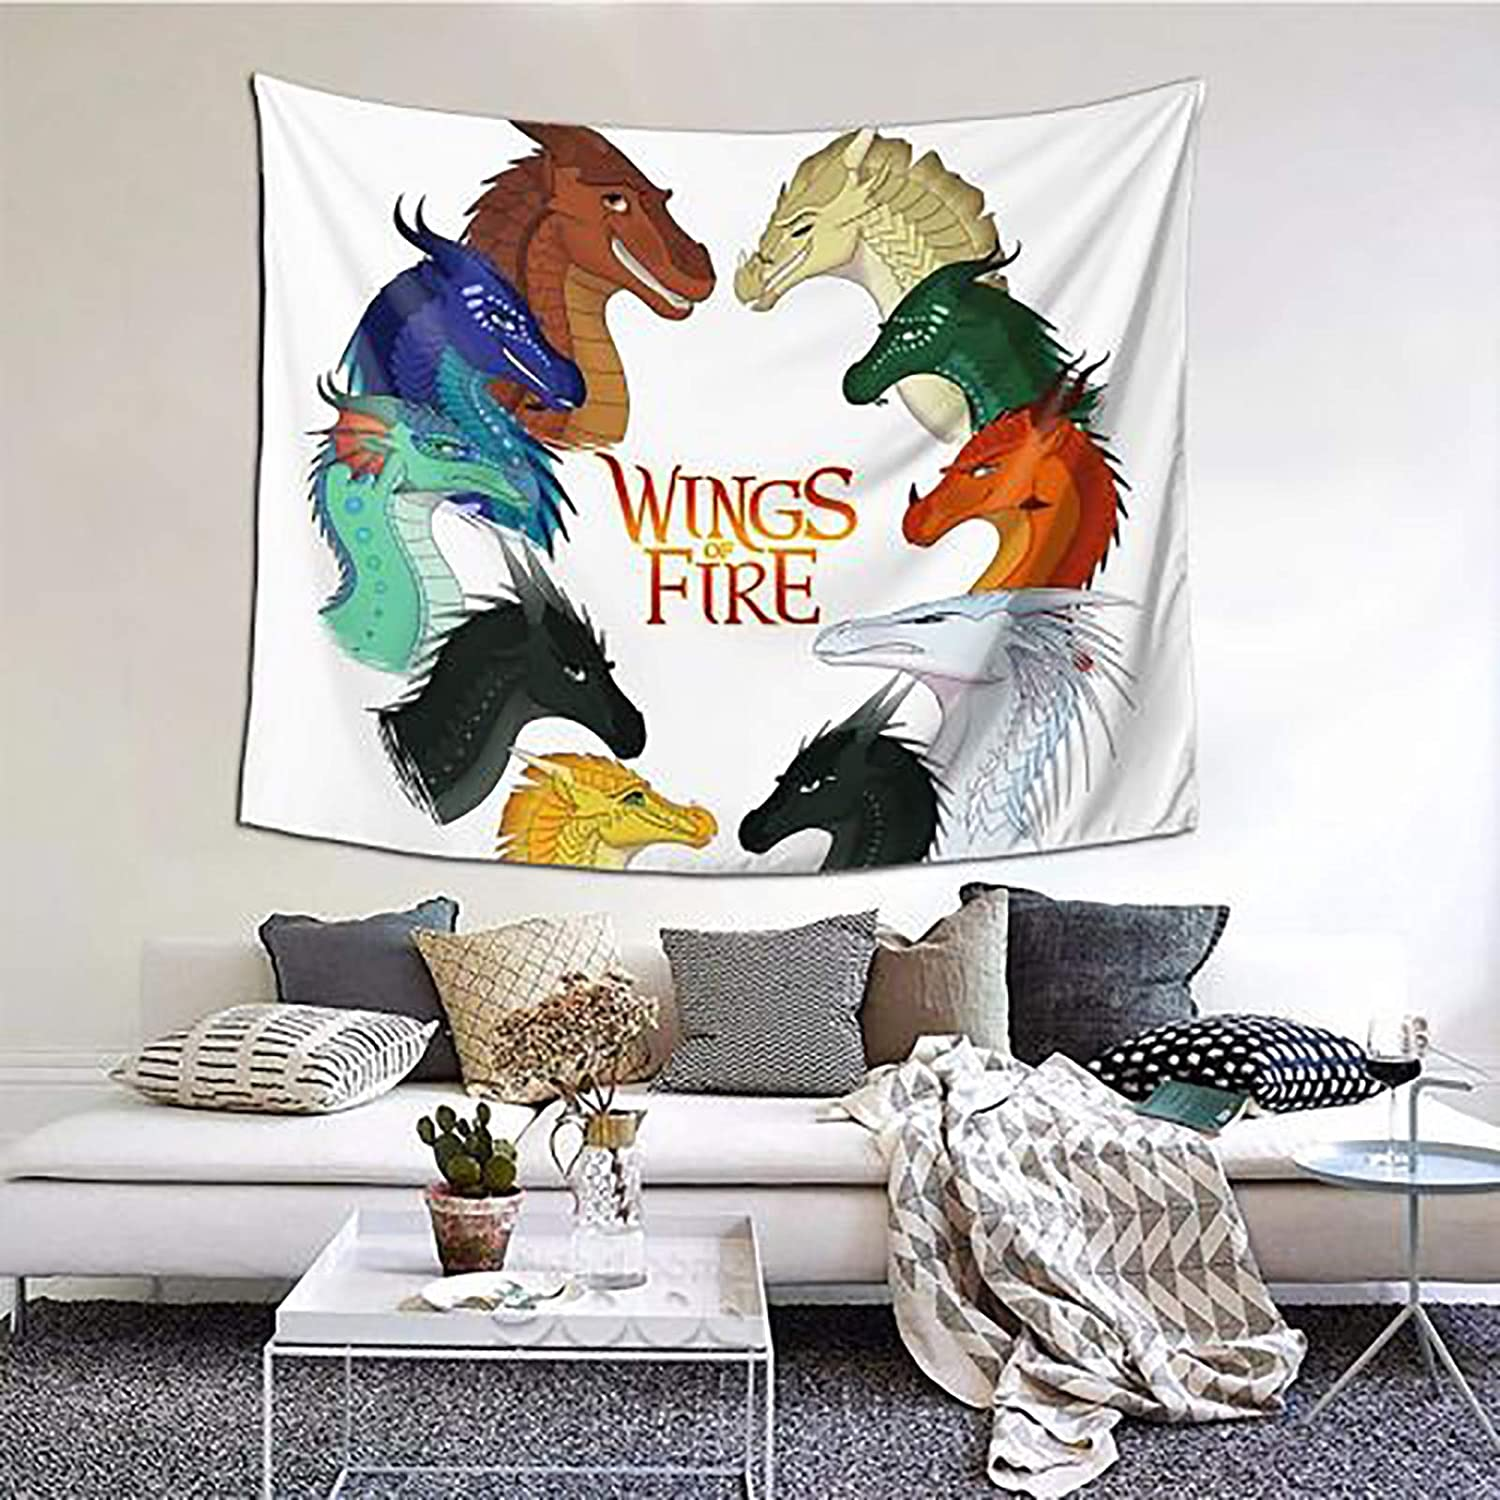 Wings Of Fire Jade Winglet Tapestry Wall Decor Soft Colorful Polyester Tapestries Decoration For Room 60X51 Inch